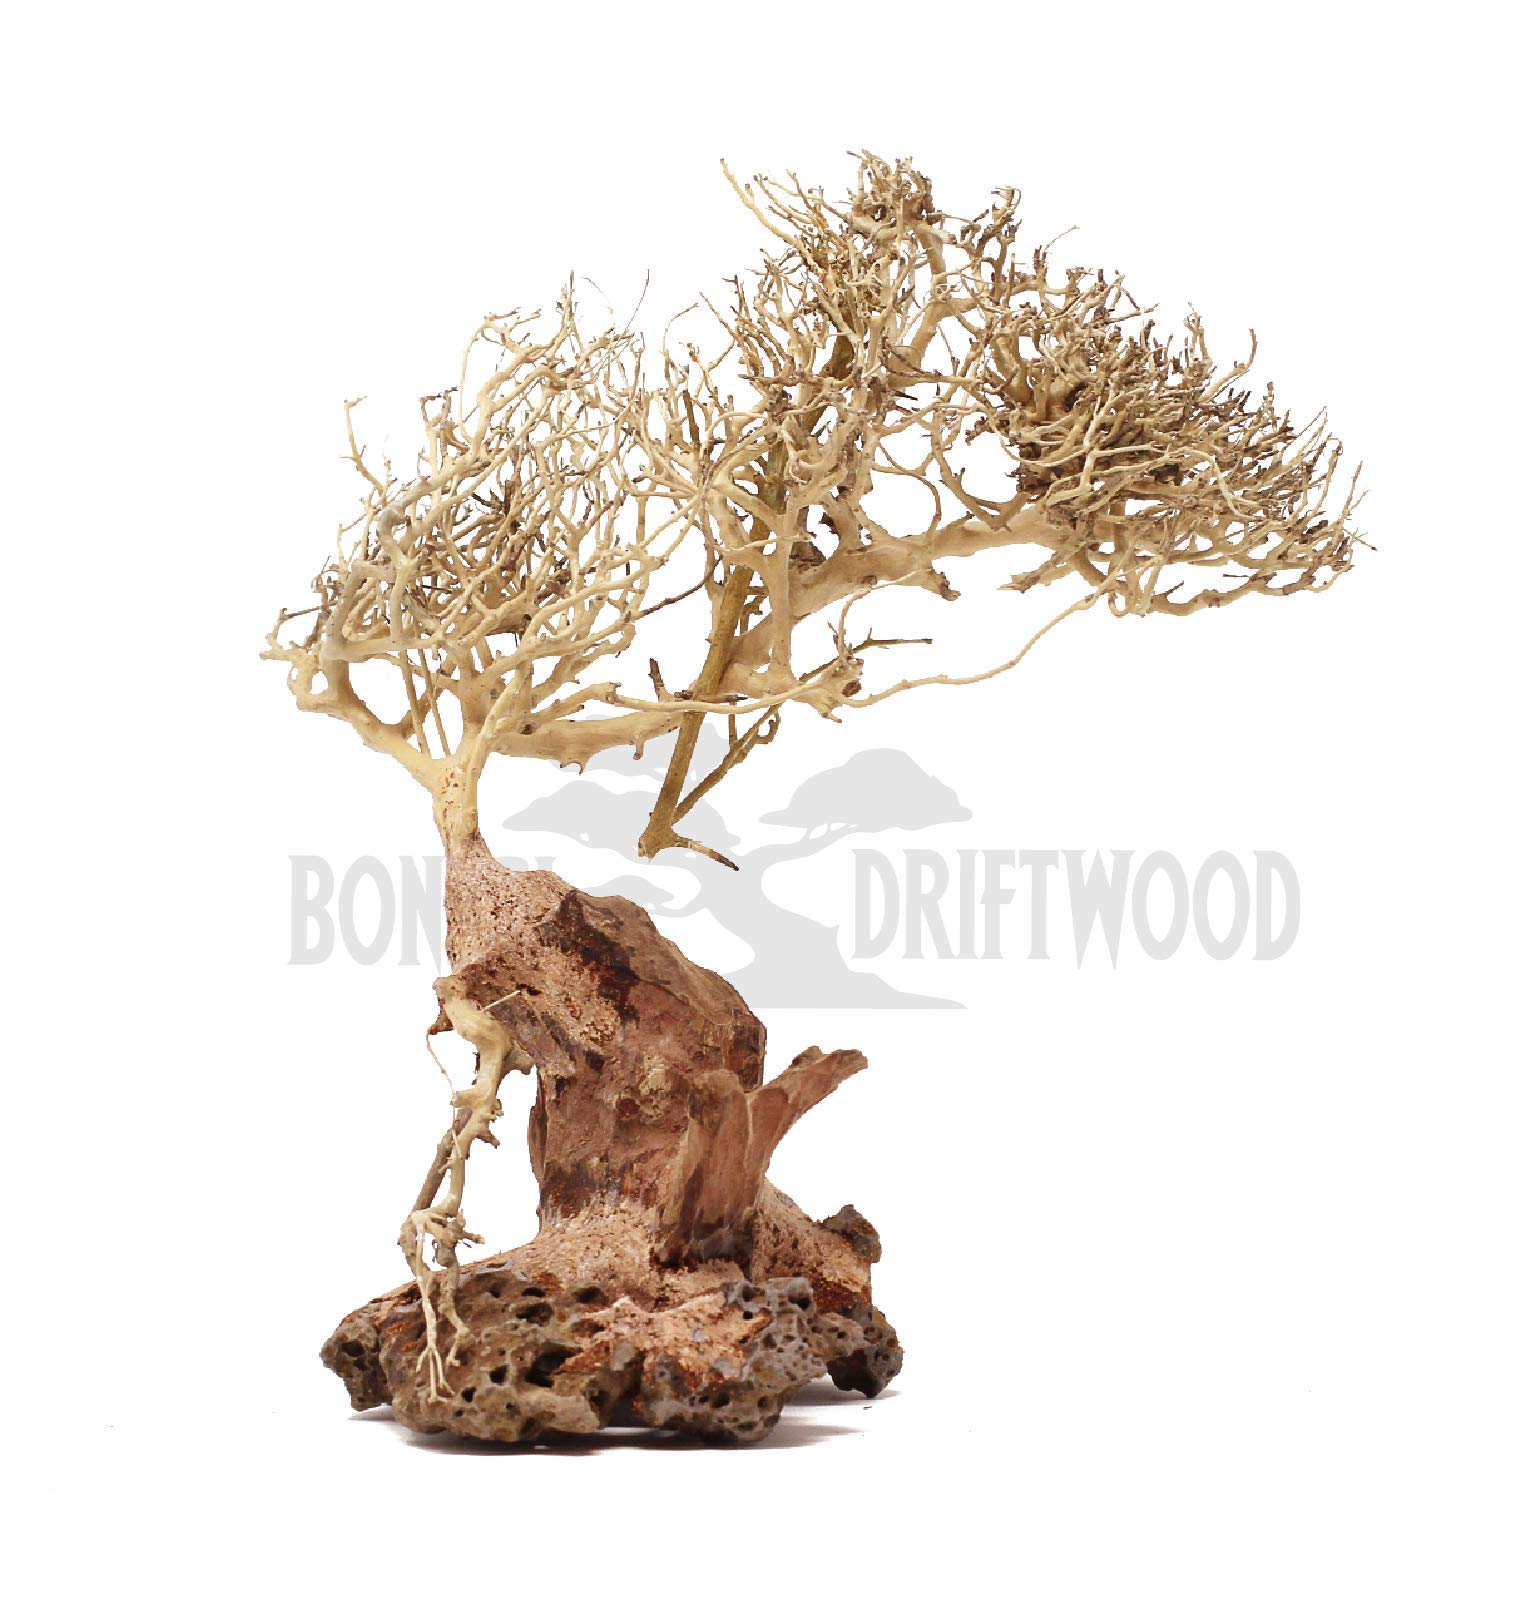 Bonsai Driftwood Aquarium Tree (10 Inch) Natural, Handcrafted Fish Tank Decoration | Helps Balance Water pH Levels, Stabilizes Environments | Easy to Install | BE by Bonsai Driftwood